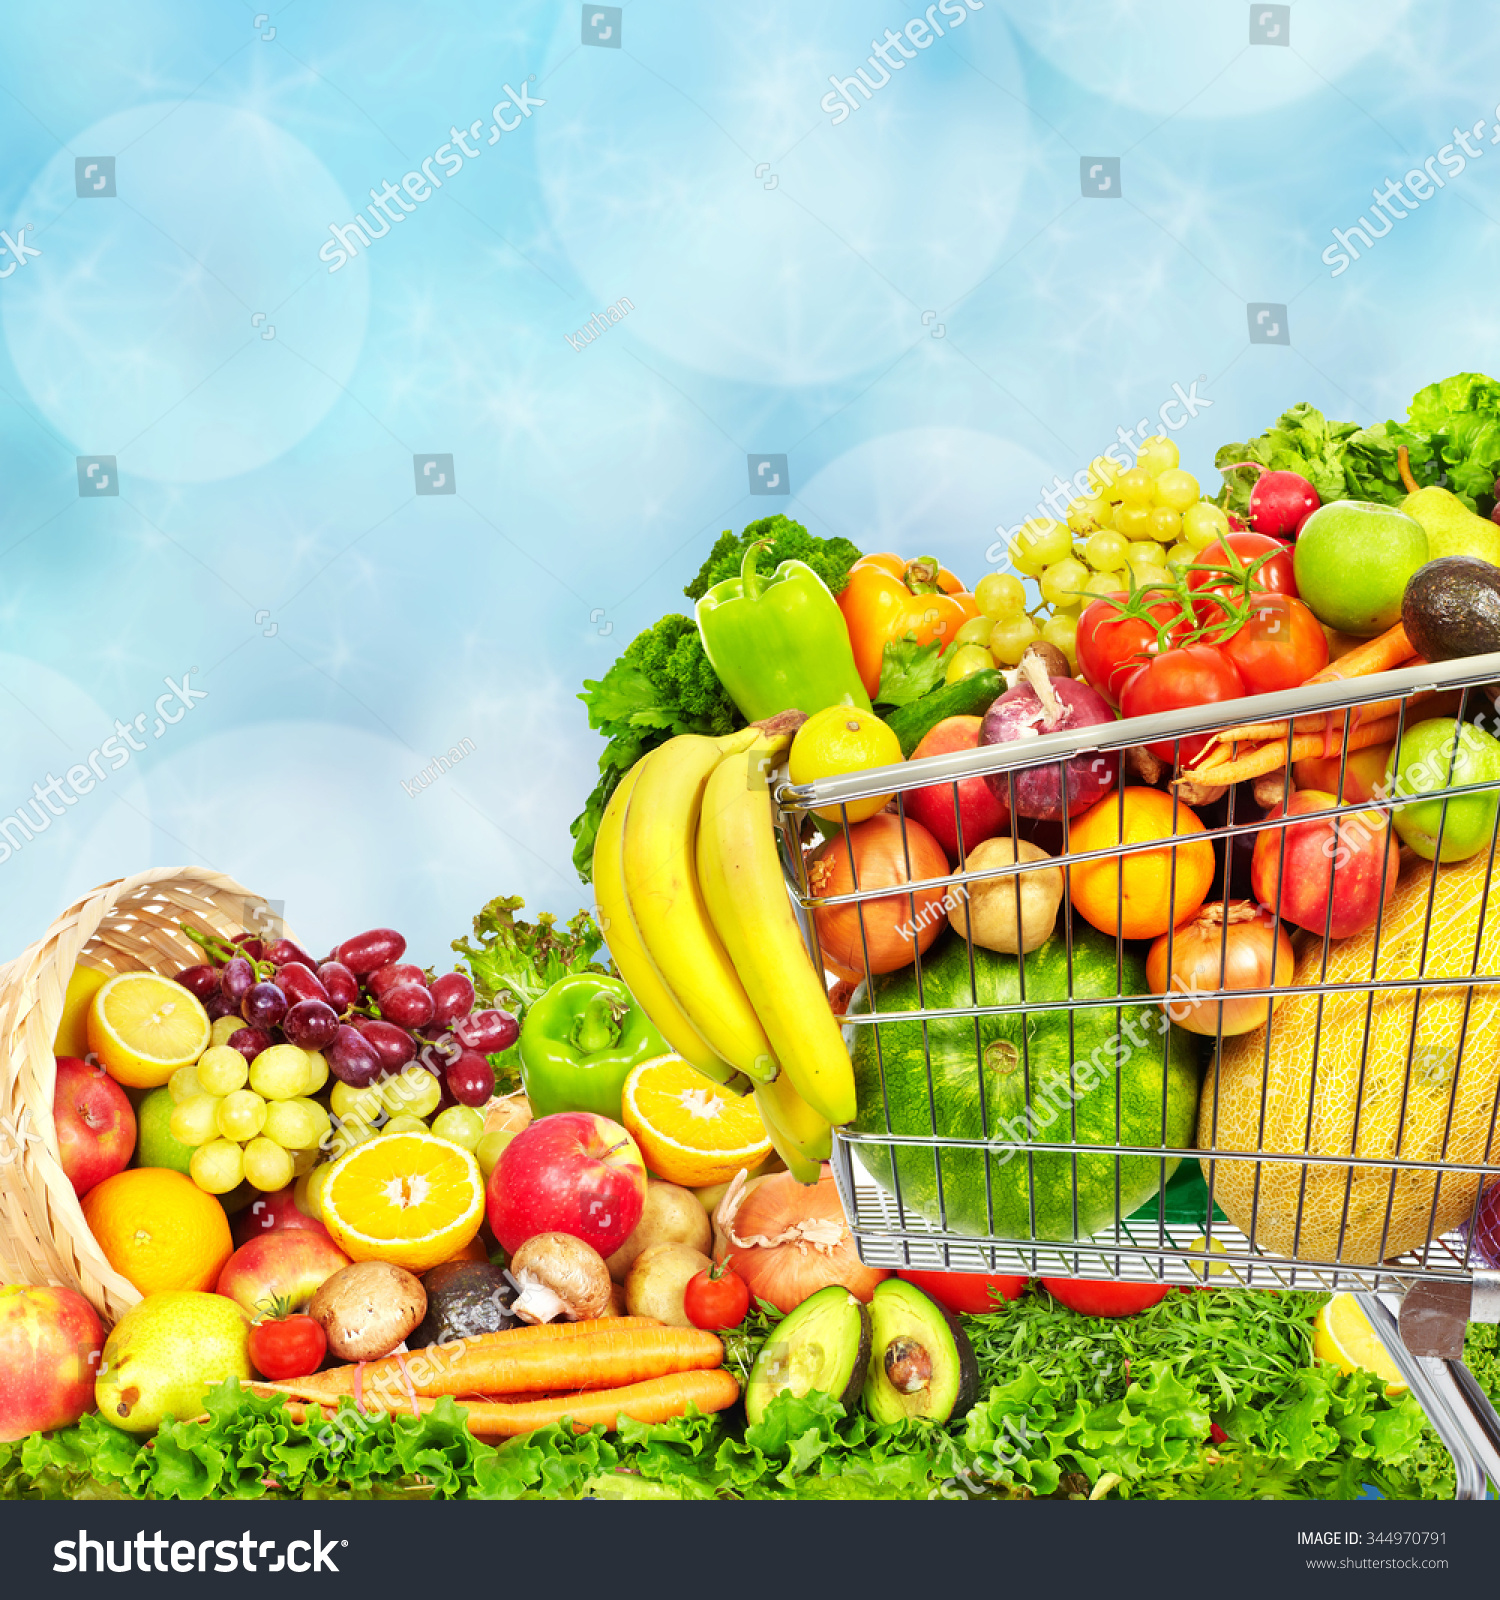 Fresh Vegetables And Fruits Over Blue Background. Healthy ...